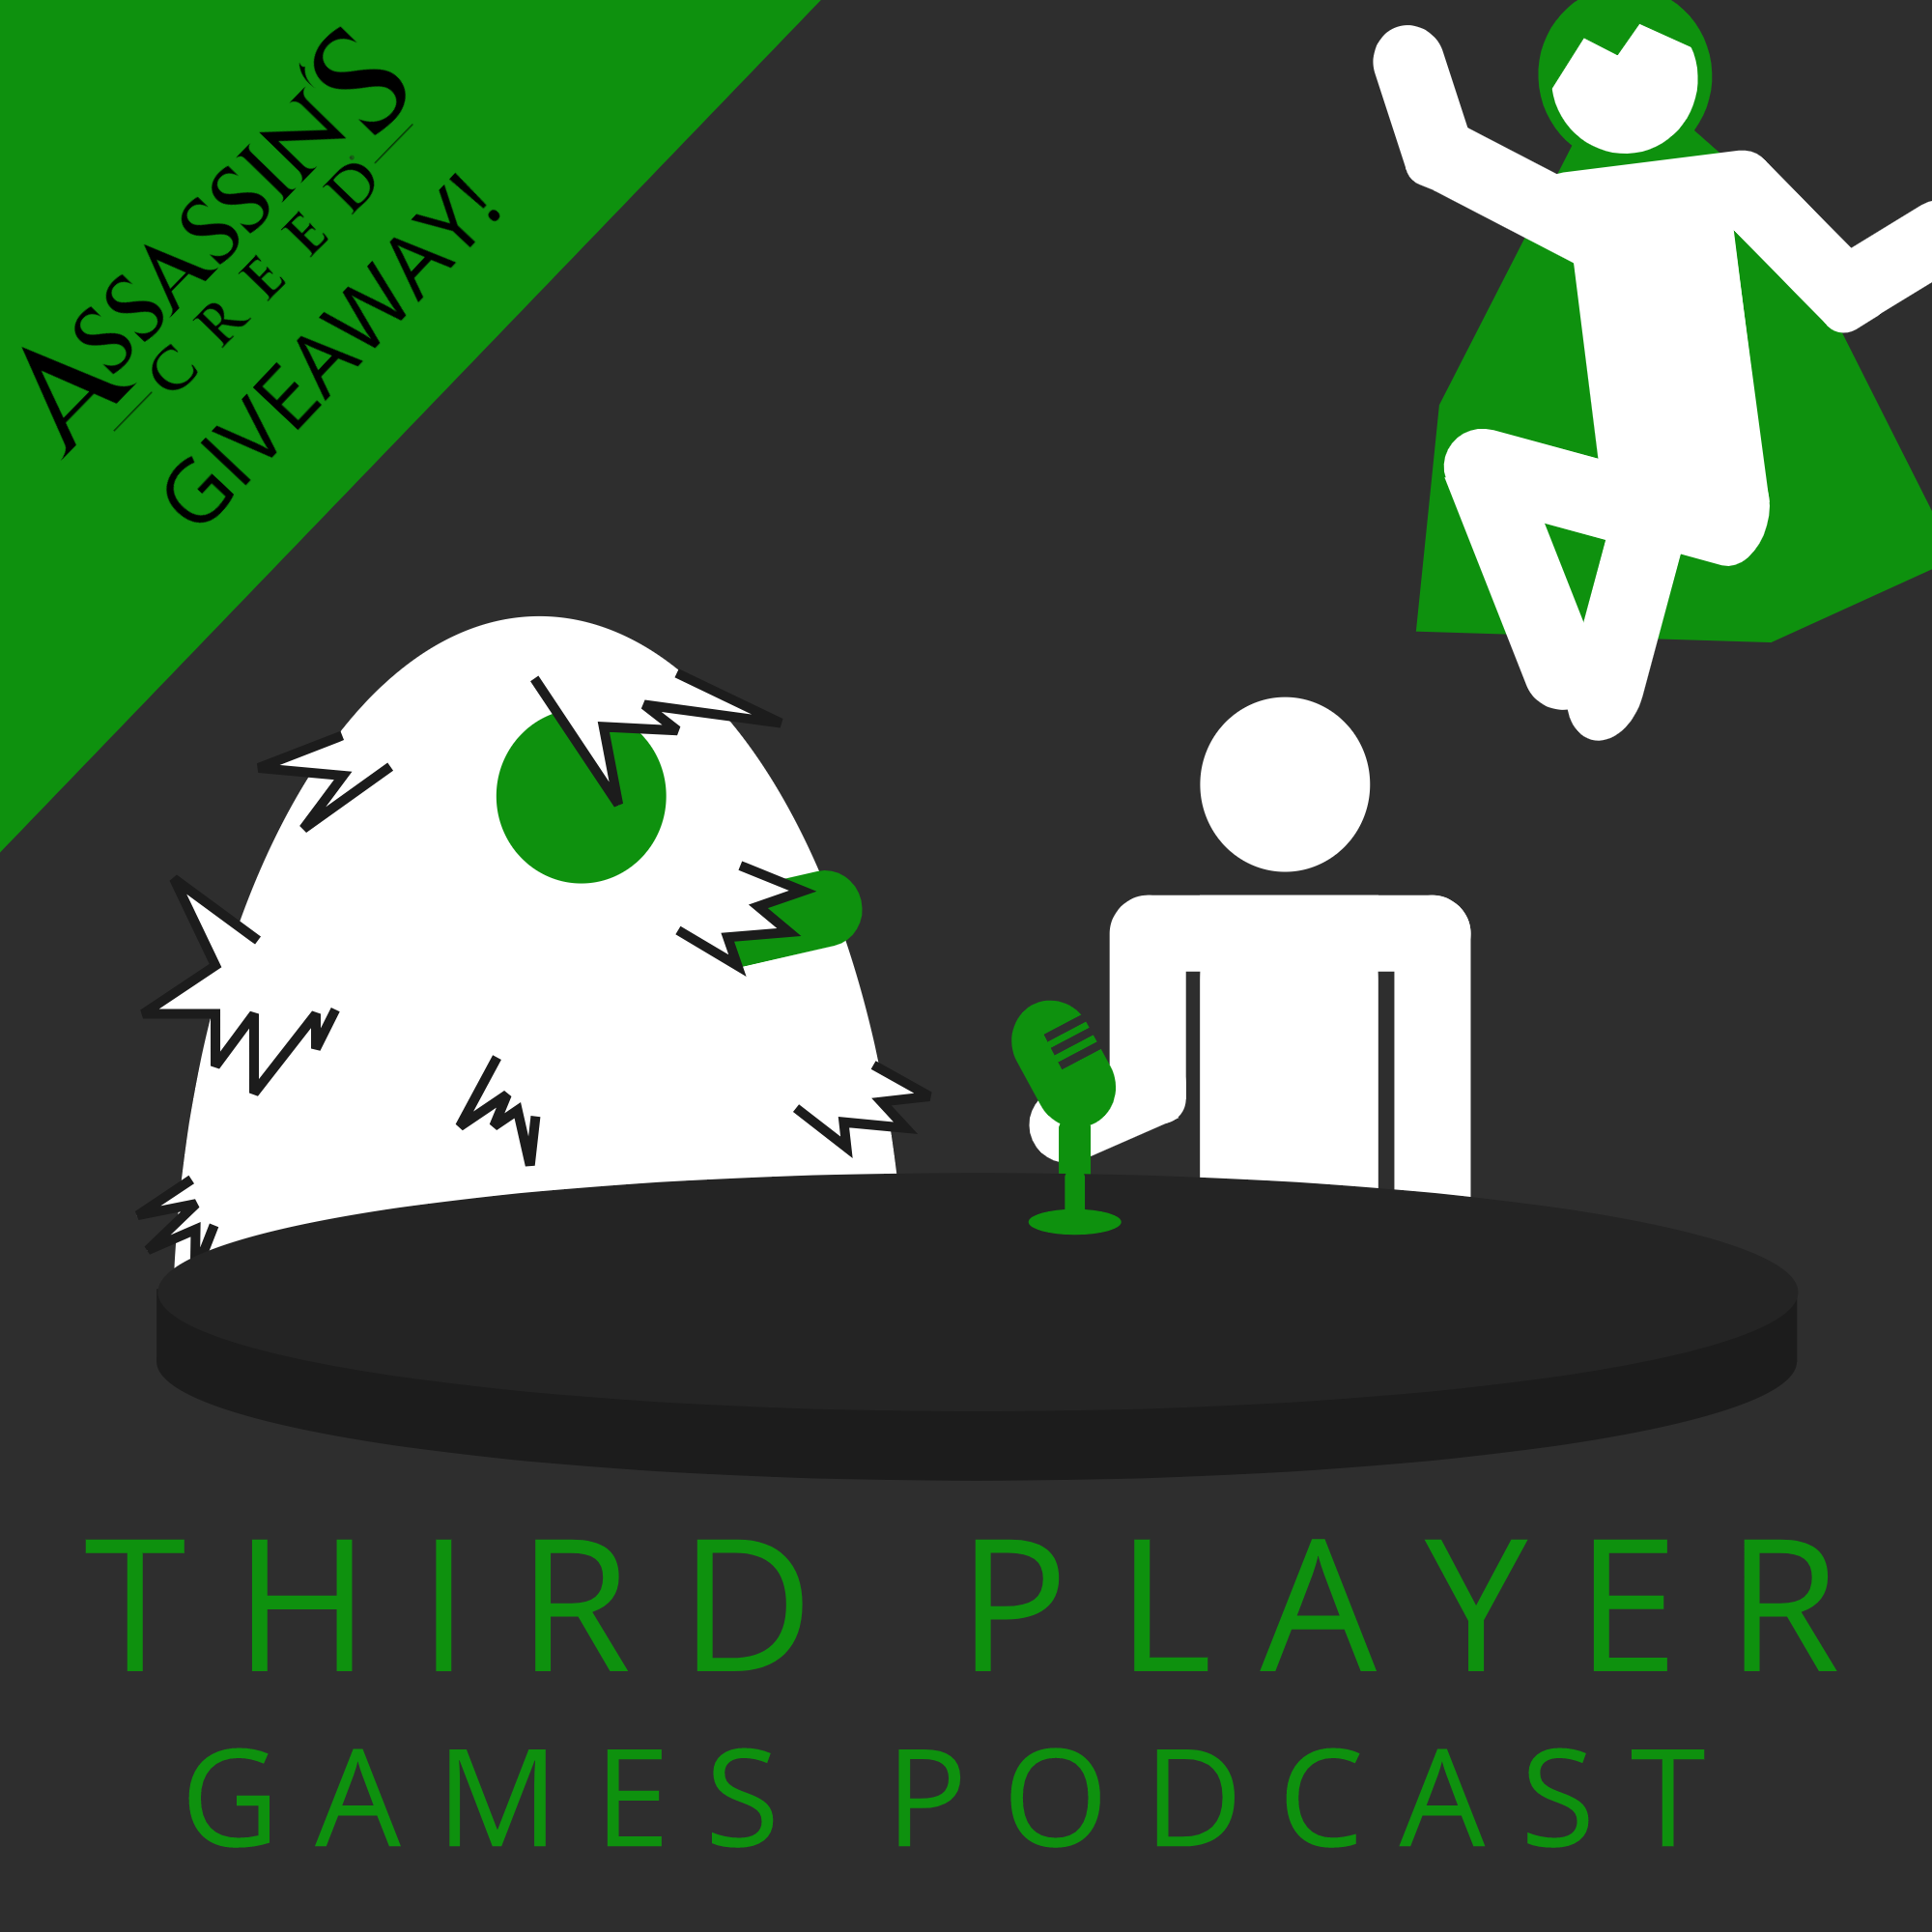 Assassins Creed Origins Giveaway - Third Player Games Podcast (Ep. 6)